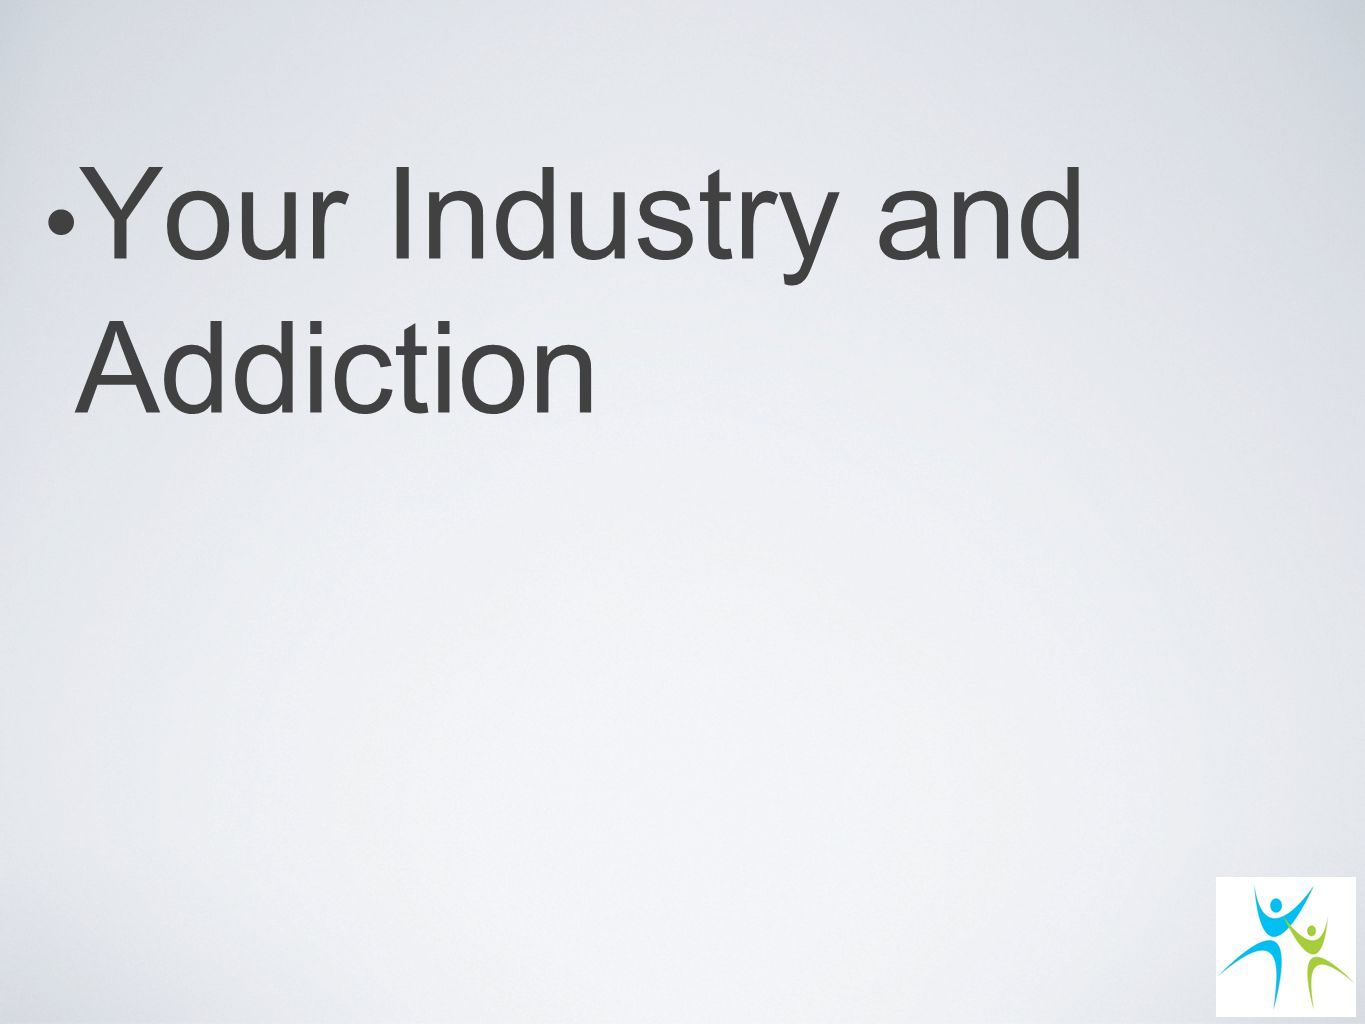 Your Industry and Addiction